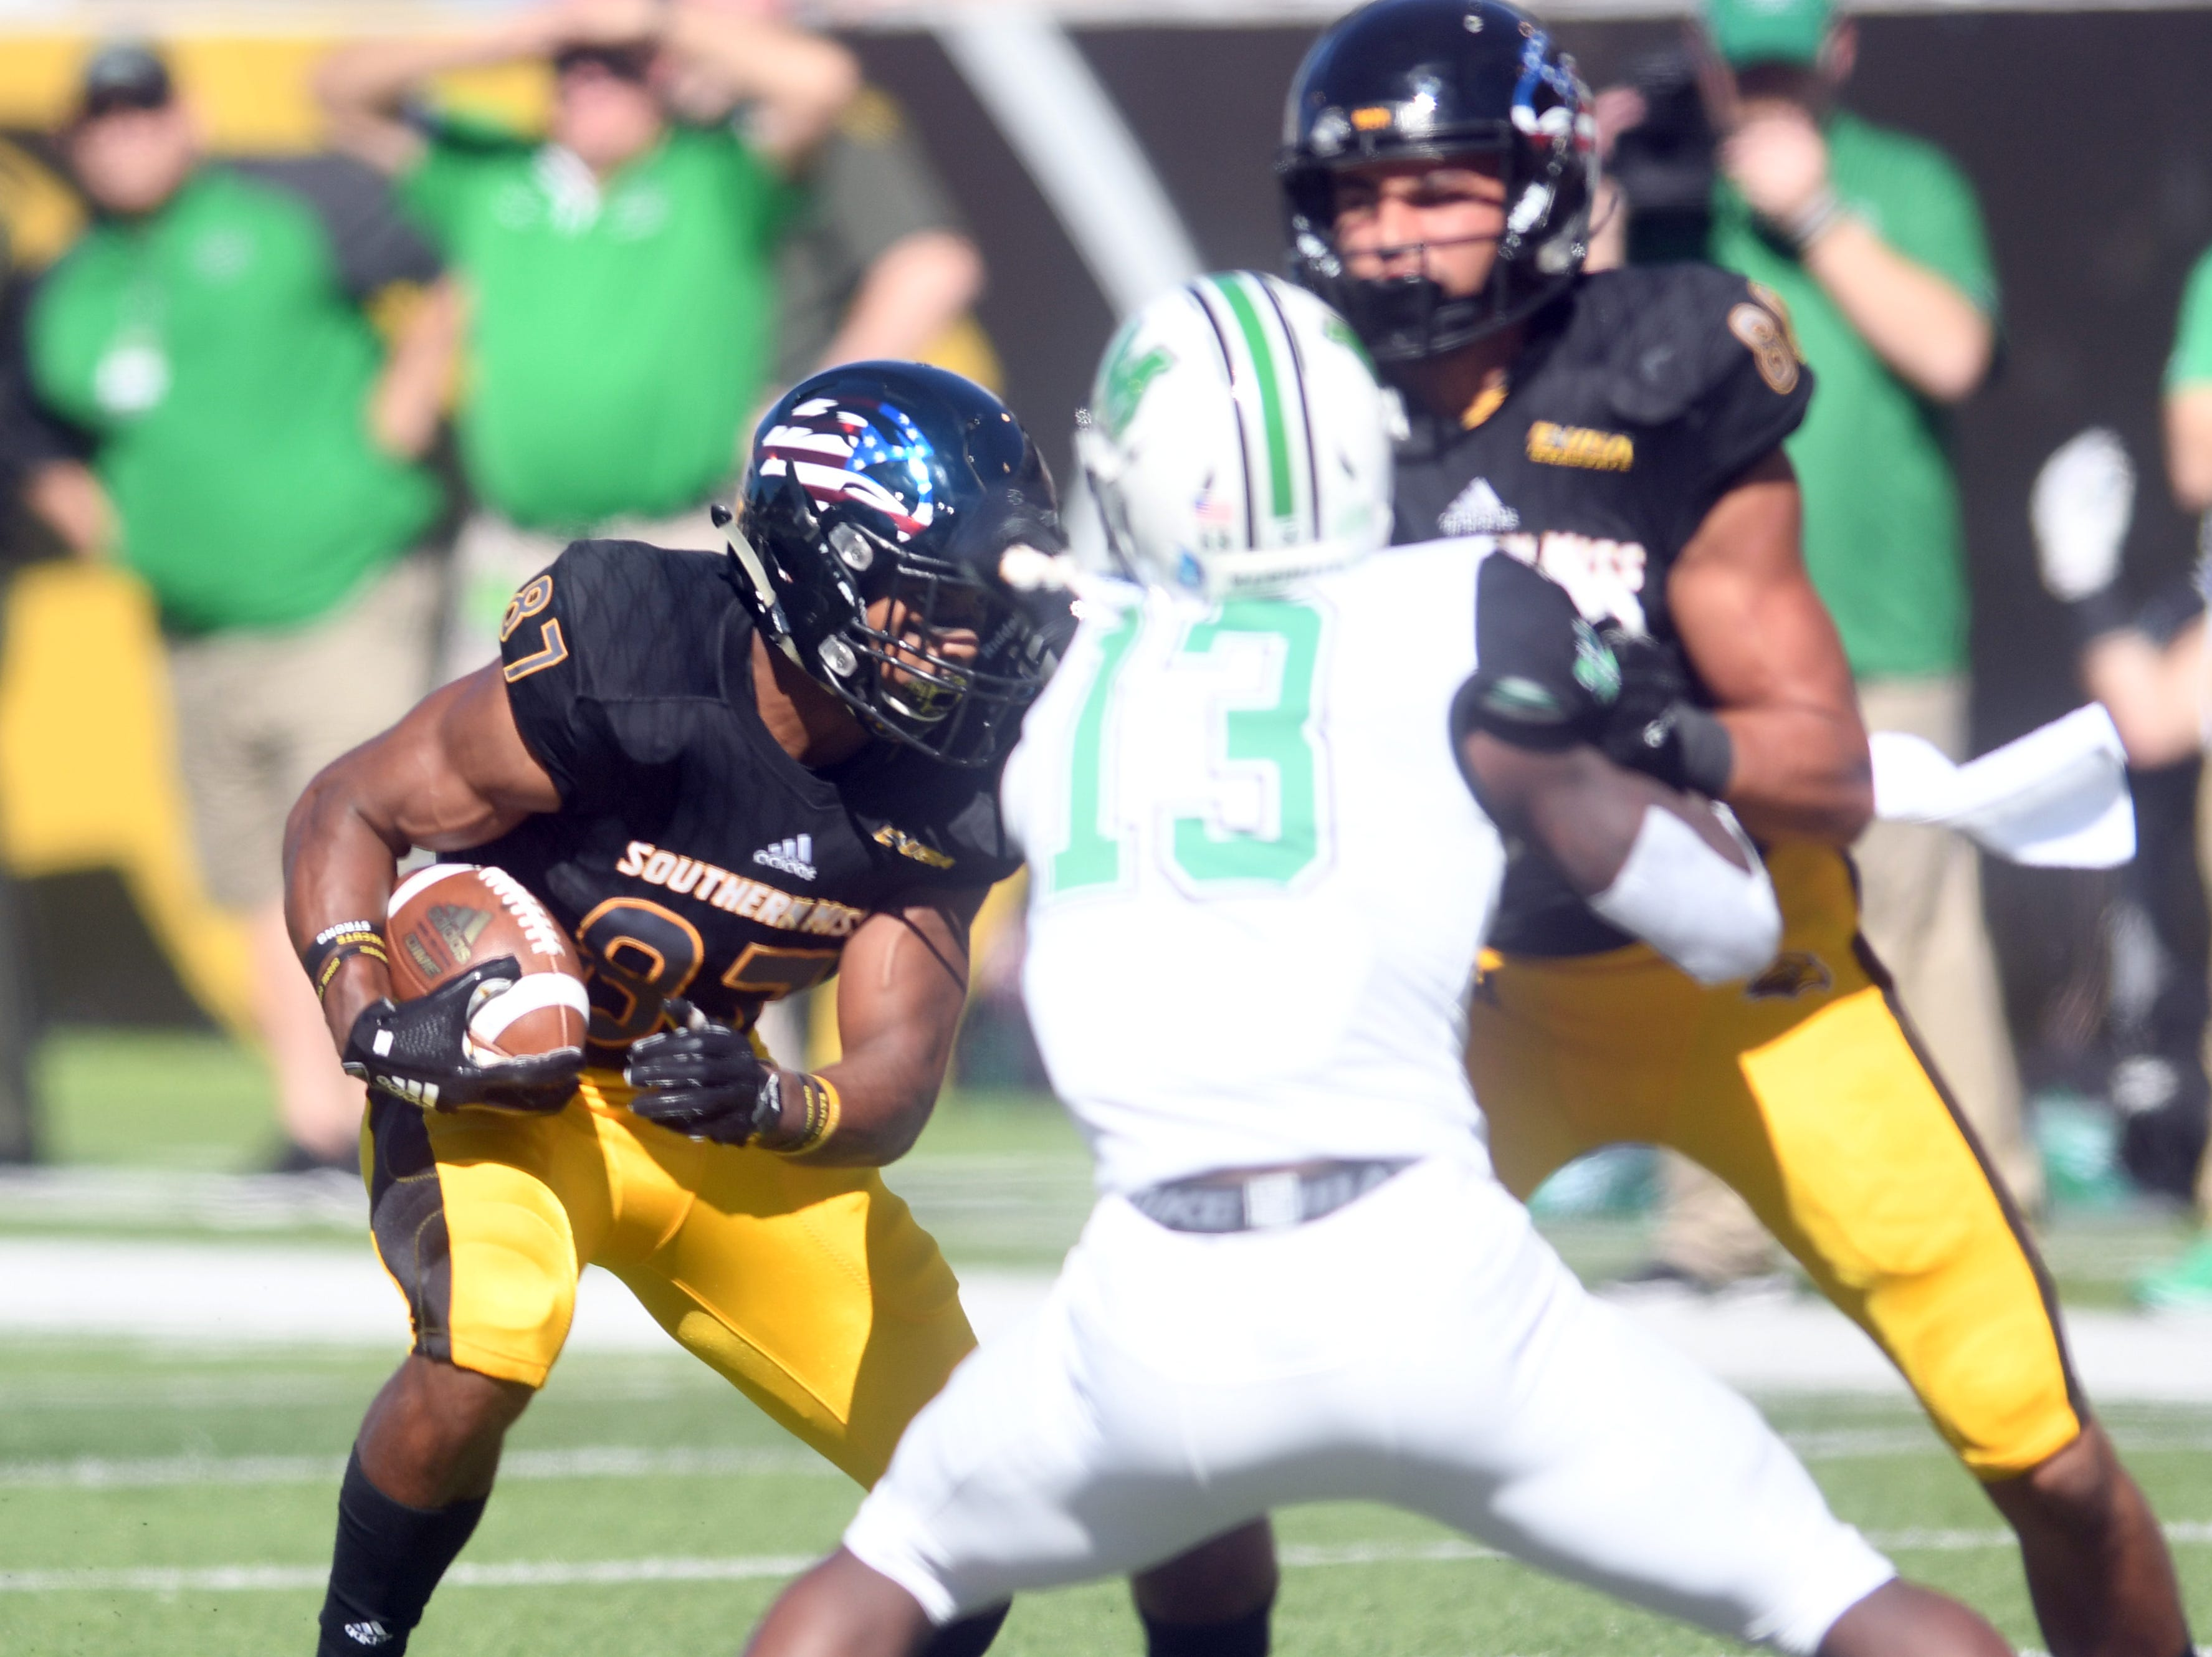 Southern Miss wide receiver Brad Dennis carries the ball in a game against Marshall at M.M. Roberts Stadium on Saturday, November 3, 2018.